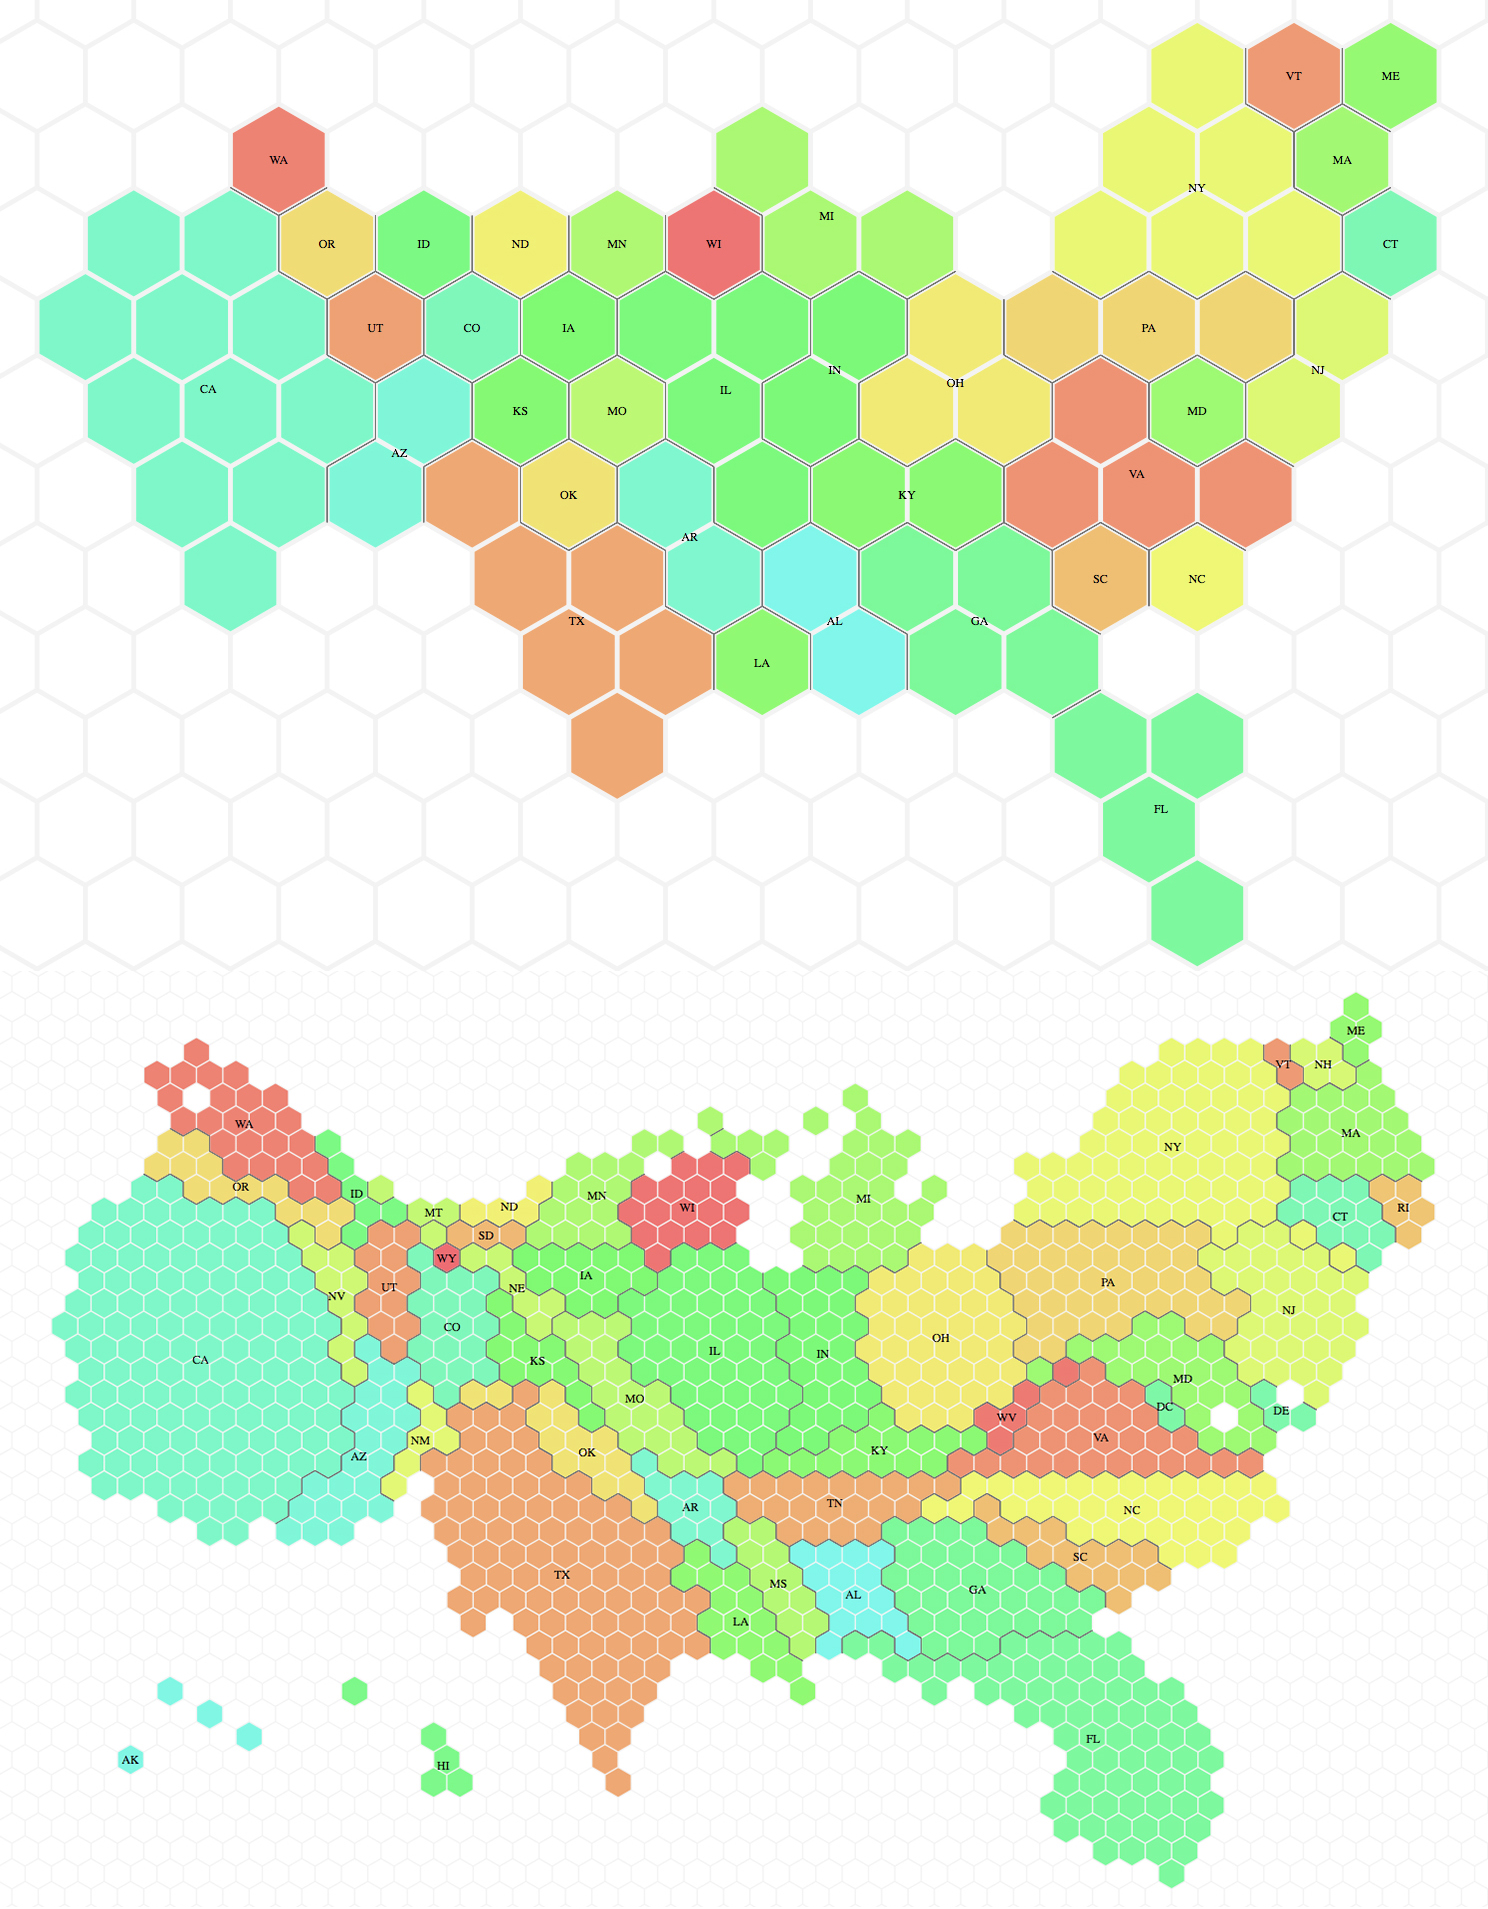 If The Map Starts Looking A Bit Too Weird You Can Drag Hexagons To Move Them Around The Tool Tells The User About The Statistical Accuracy Of Each Region S